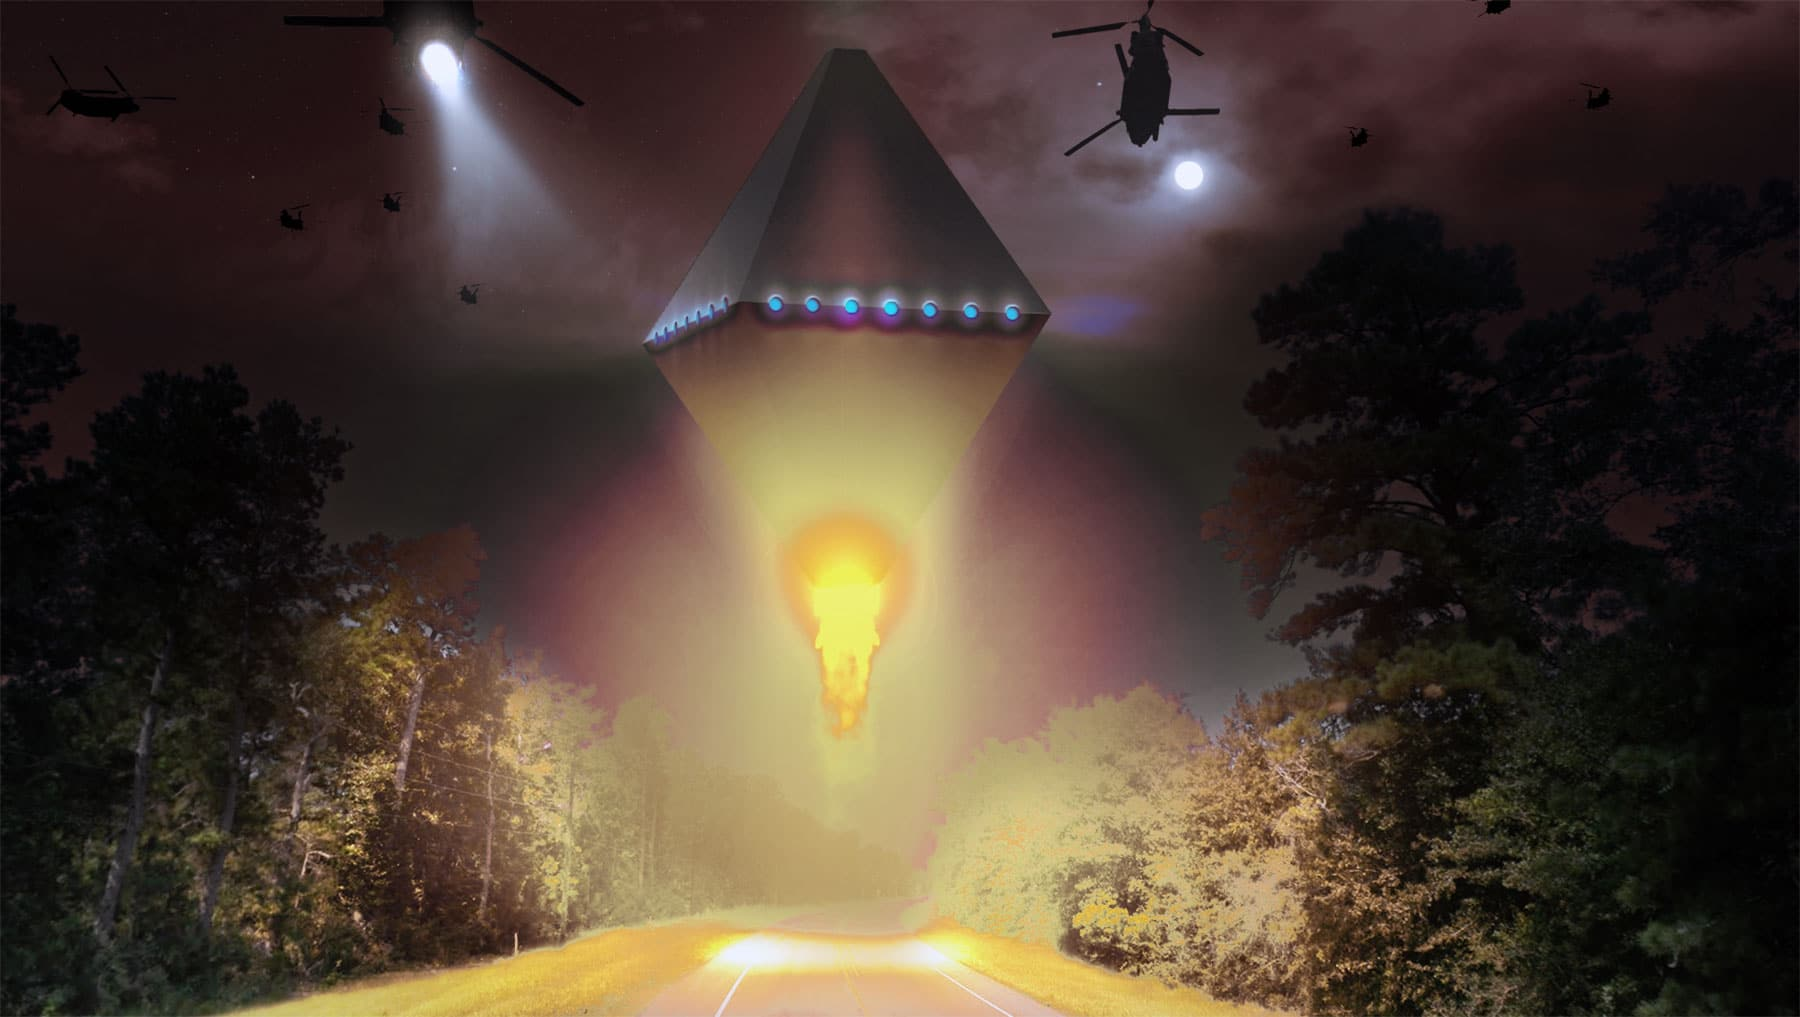 Artist's rendition of the Cash Landrum UFO Incident.